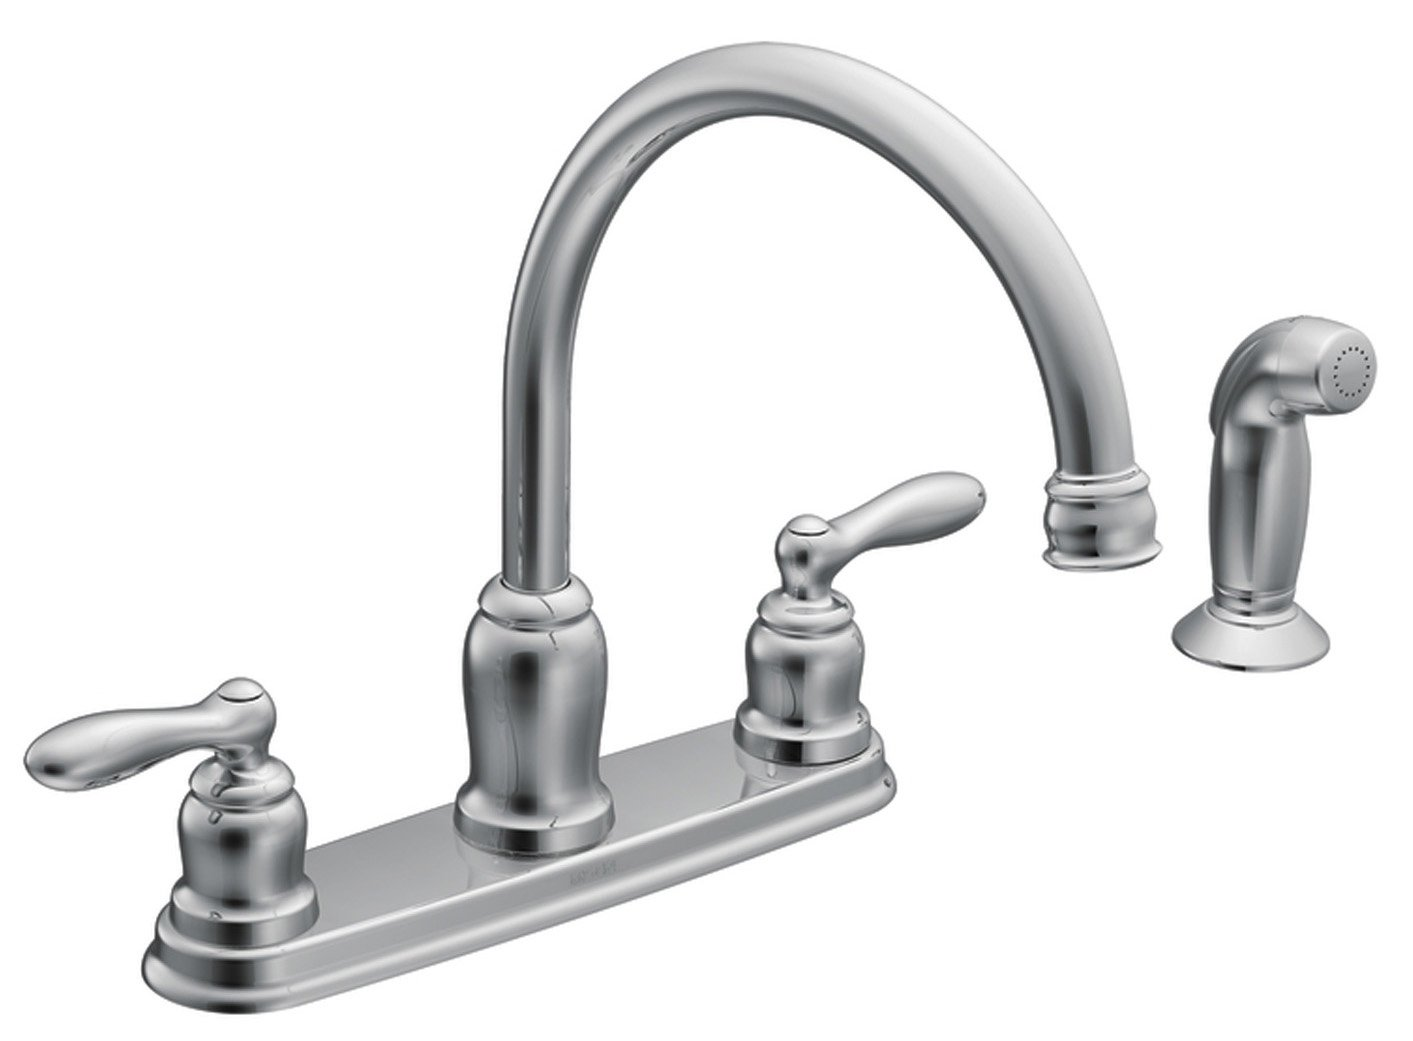 Moen Ca87888 High Arc Kitchen Faucet From The Caldwell Collection